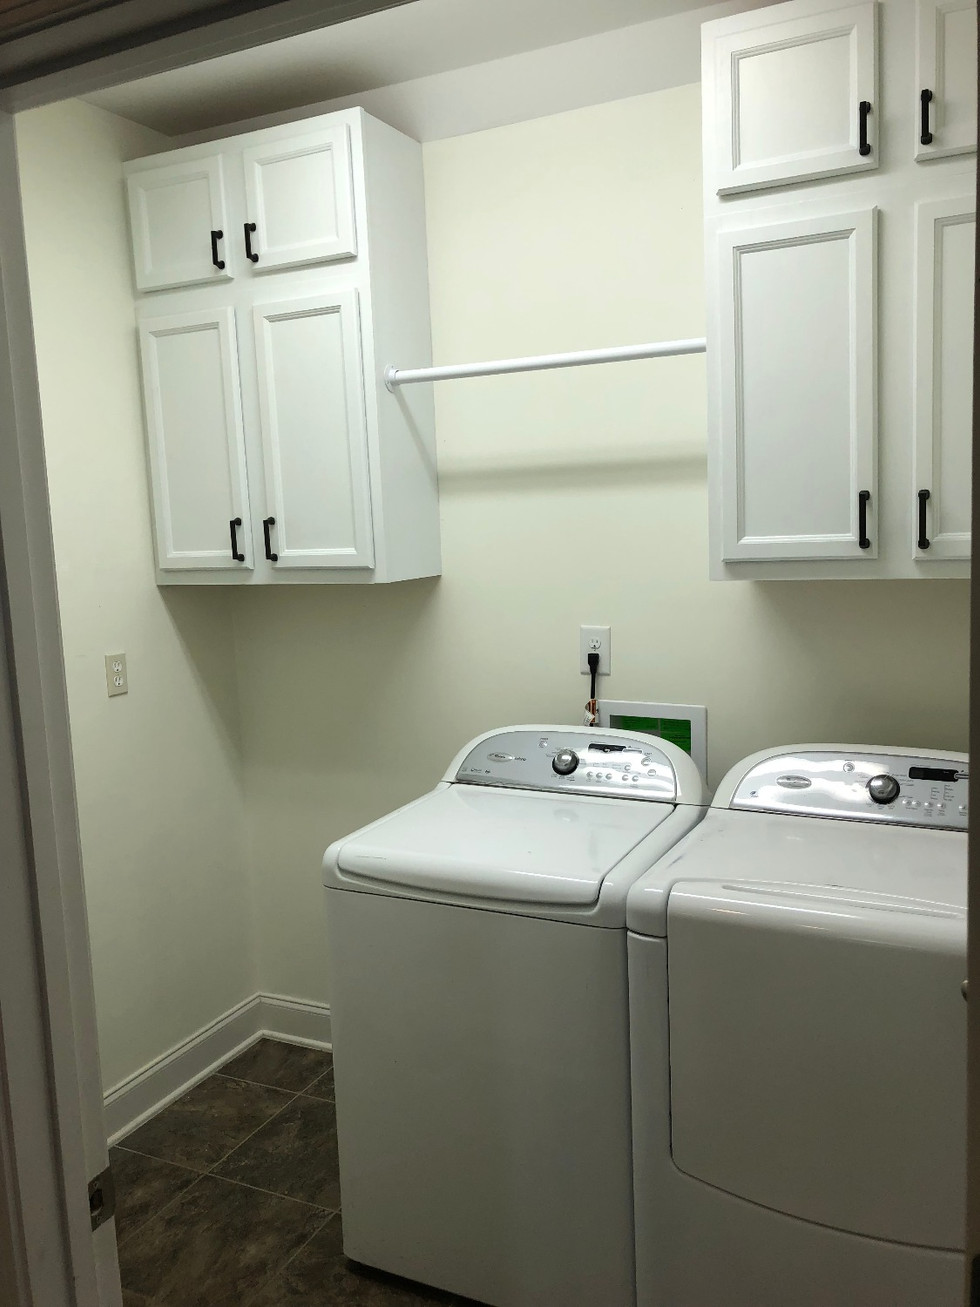 Ladd Park Laundry Room, Before and After